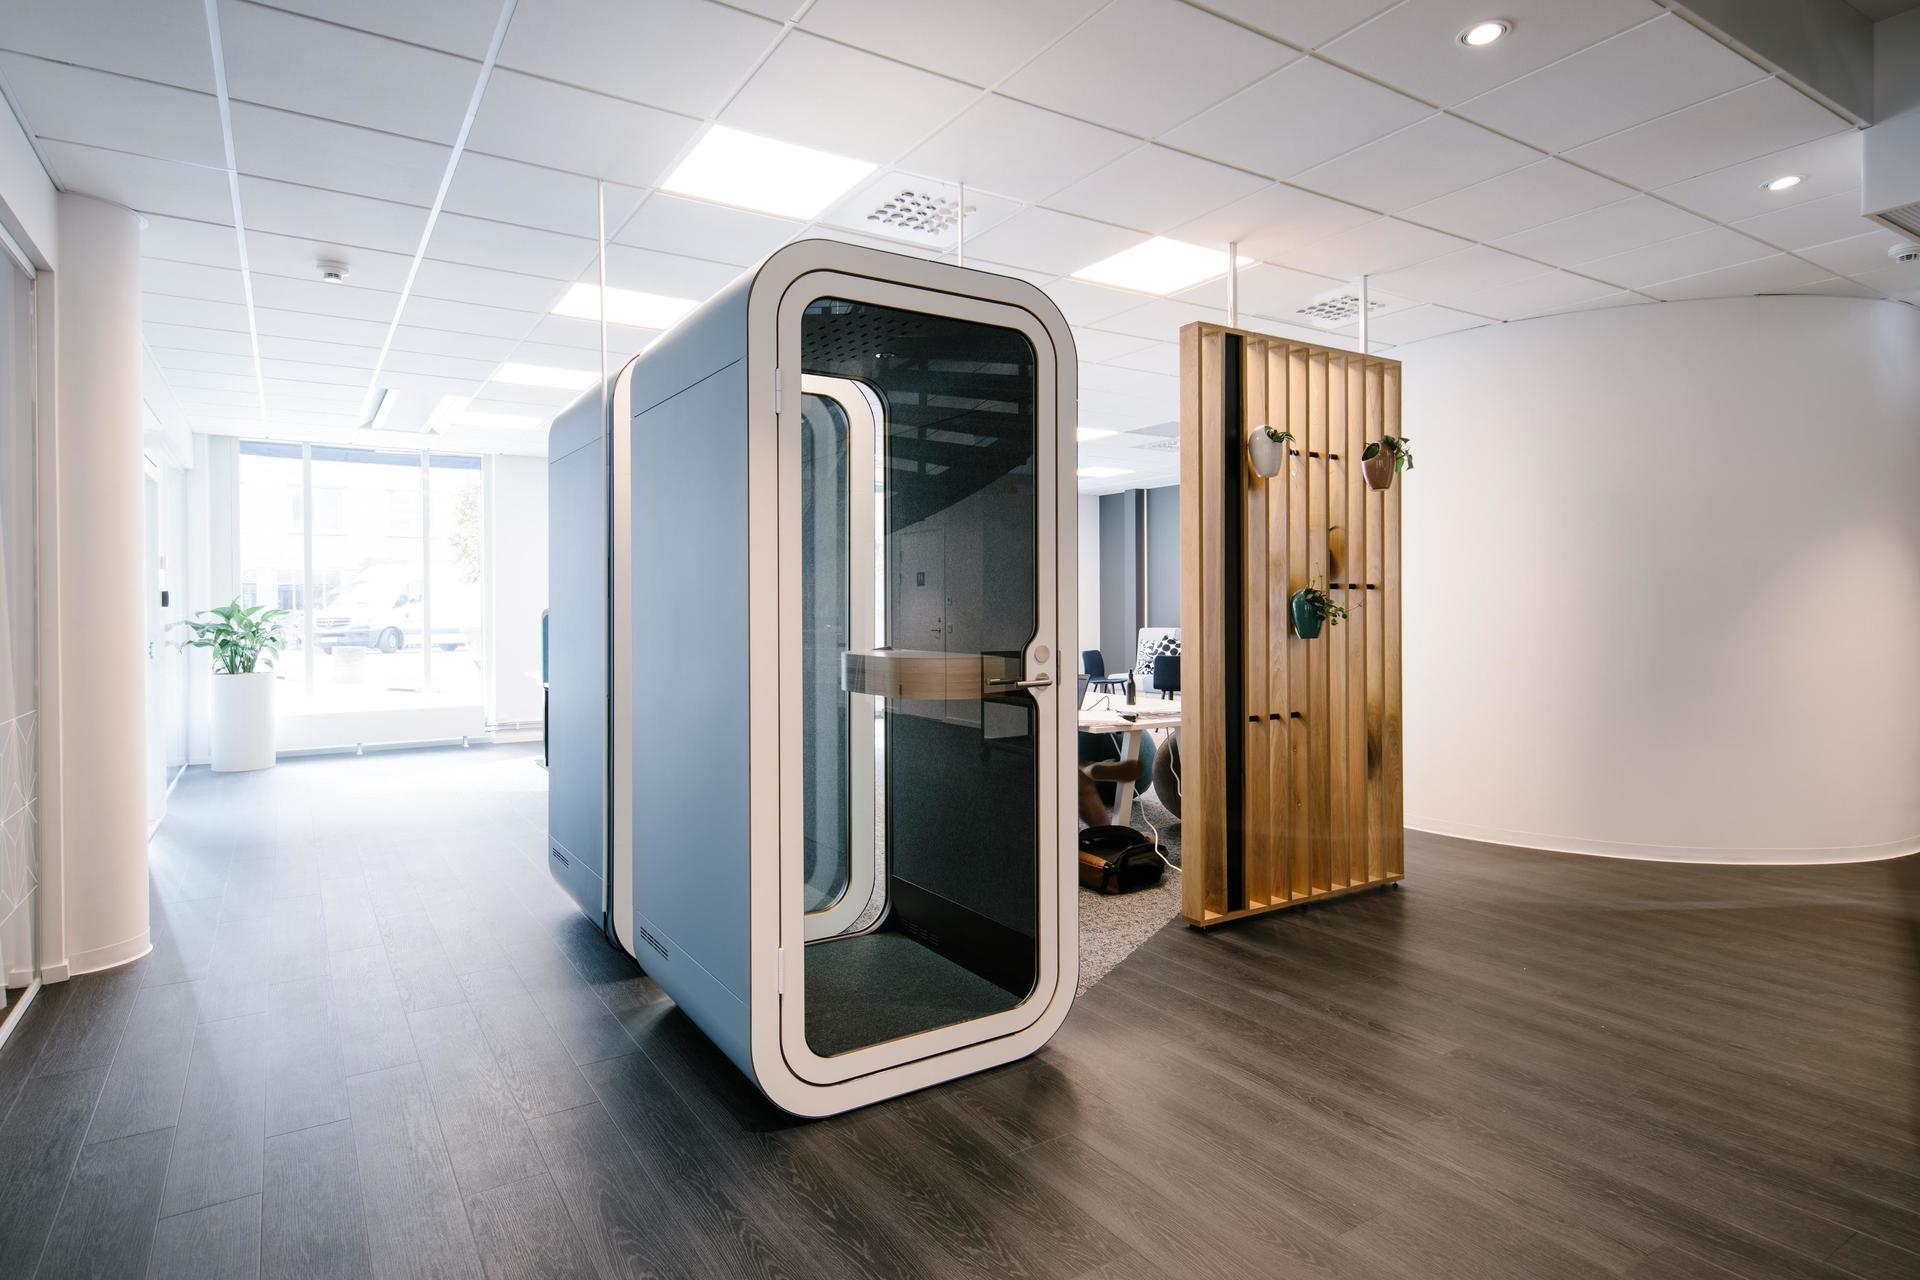 Framery O is perfect for making important calls or participating in video conferences. Have your discussions in privacy without disturbing your colleagues. Framery O delivers an echo-free and comfortable working environment. The installation is quick and the product is ready to be used the same day the product is delivered.